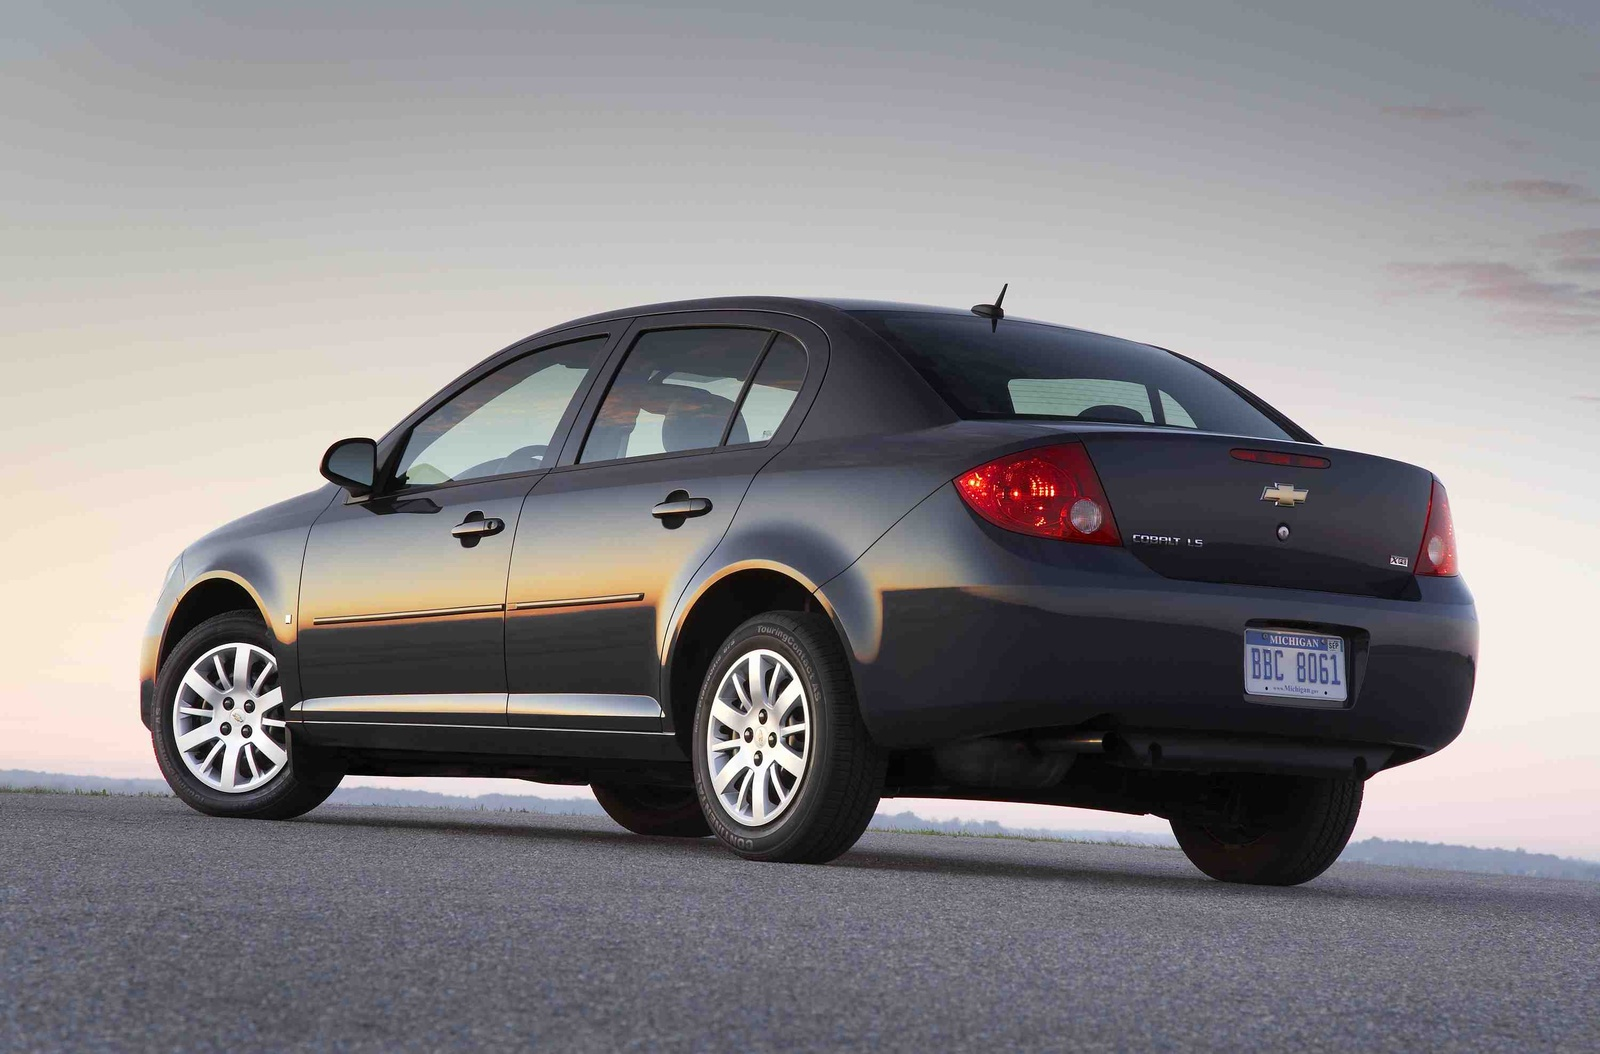 Chevrolet Cobalt photo 08